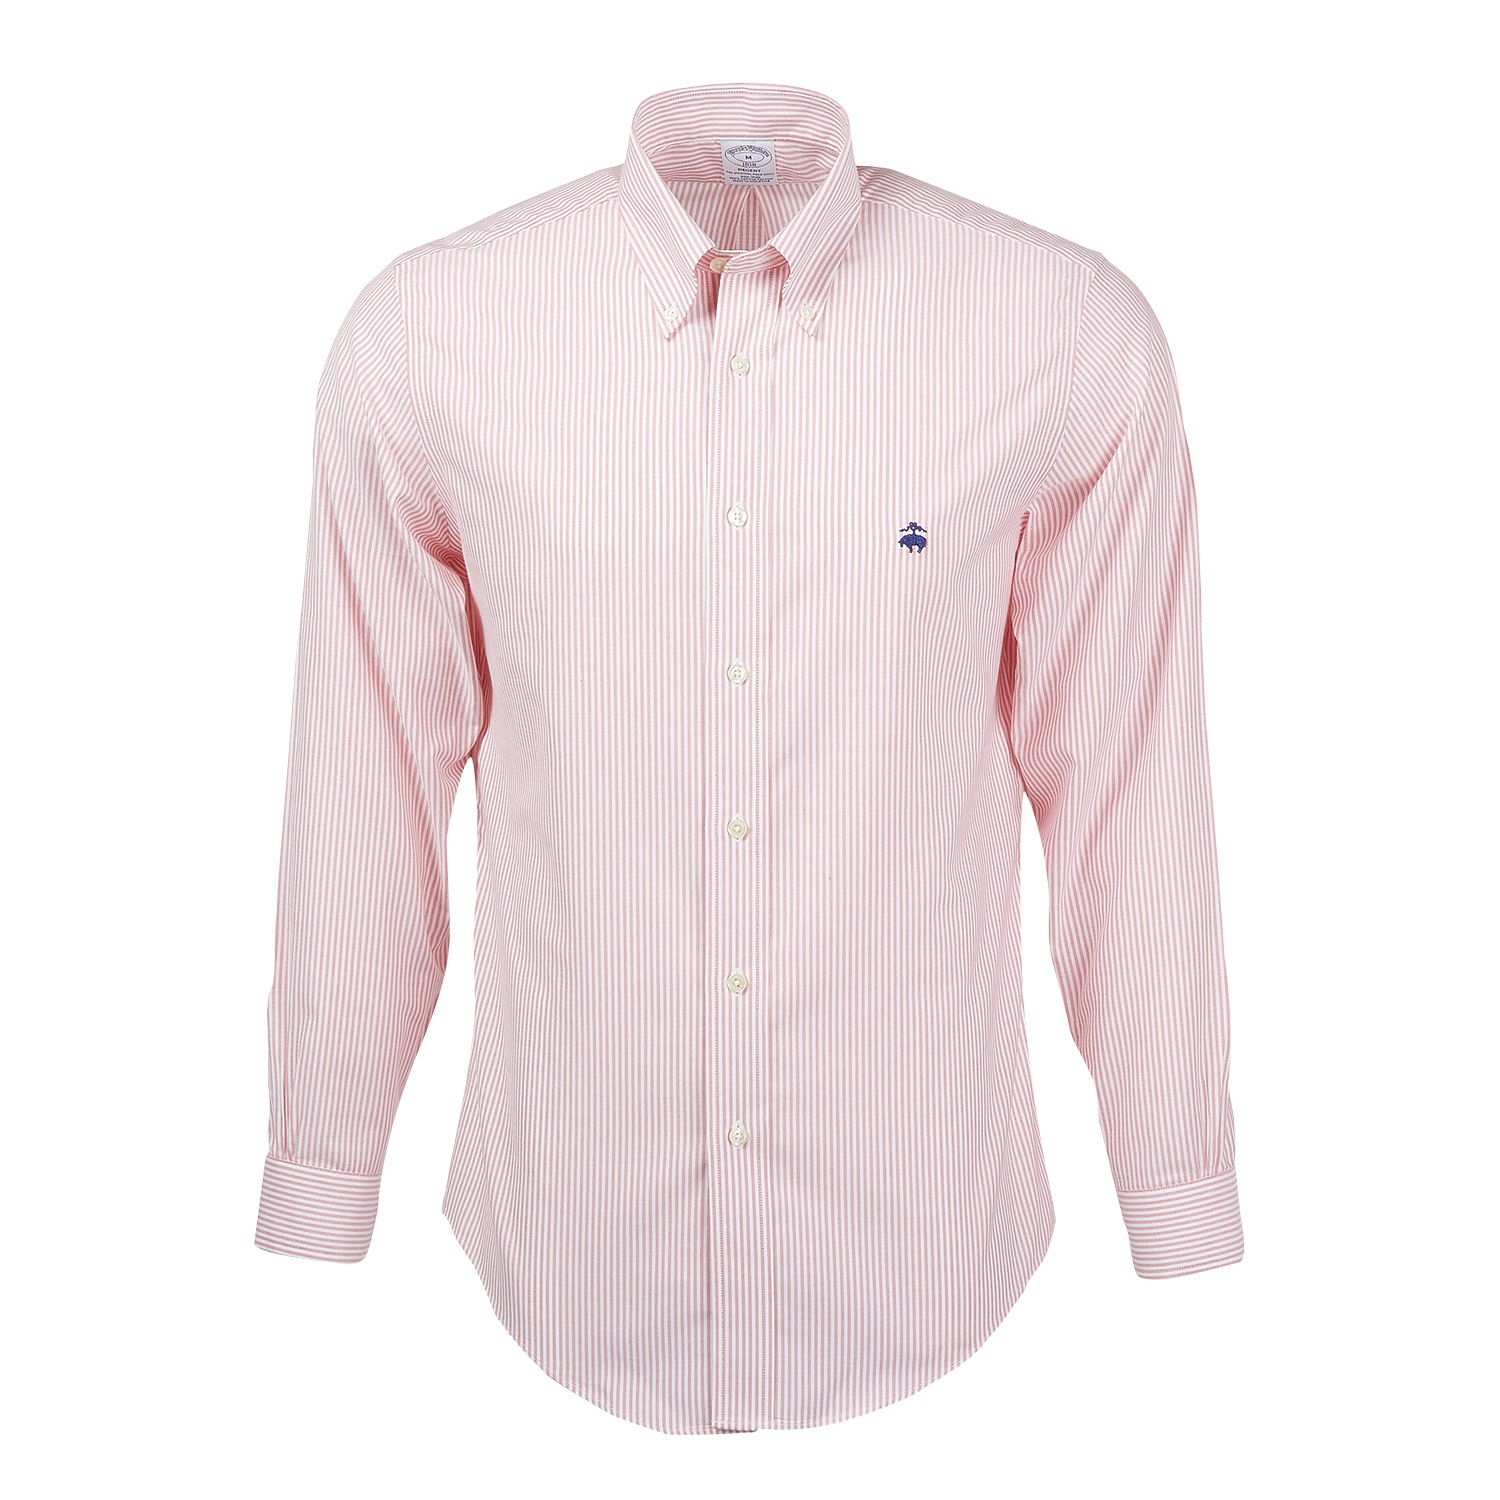 Brooks Brothers BR0732 - Men's Madison Fit Non-Iron Bengal Stripe Oxford Sport Shirt